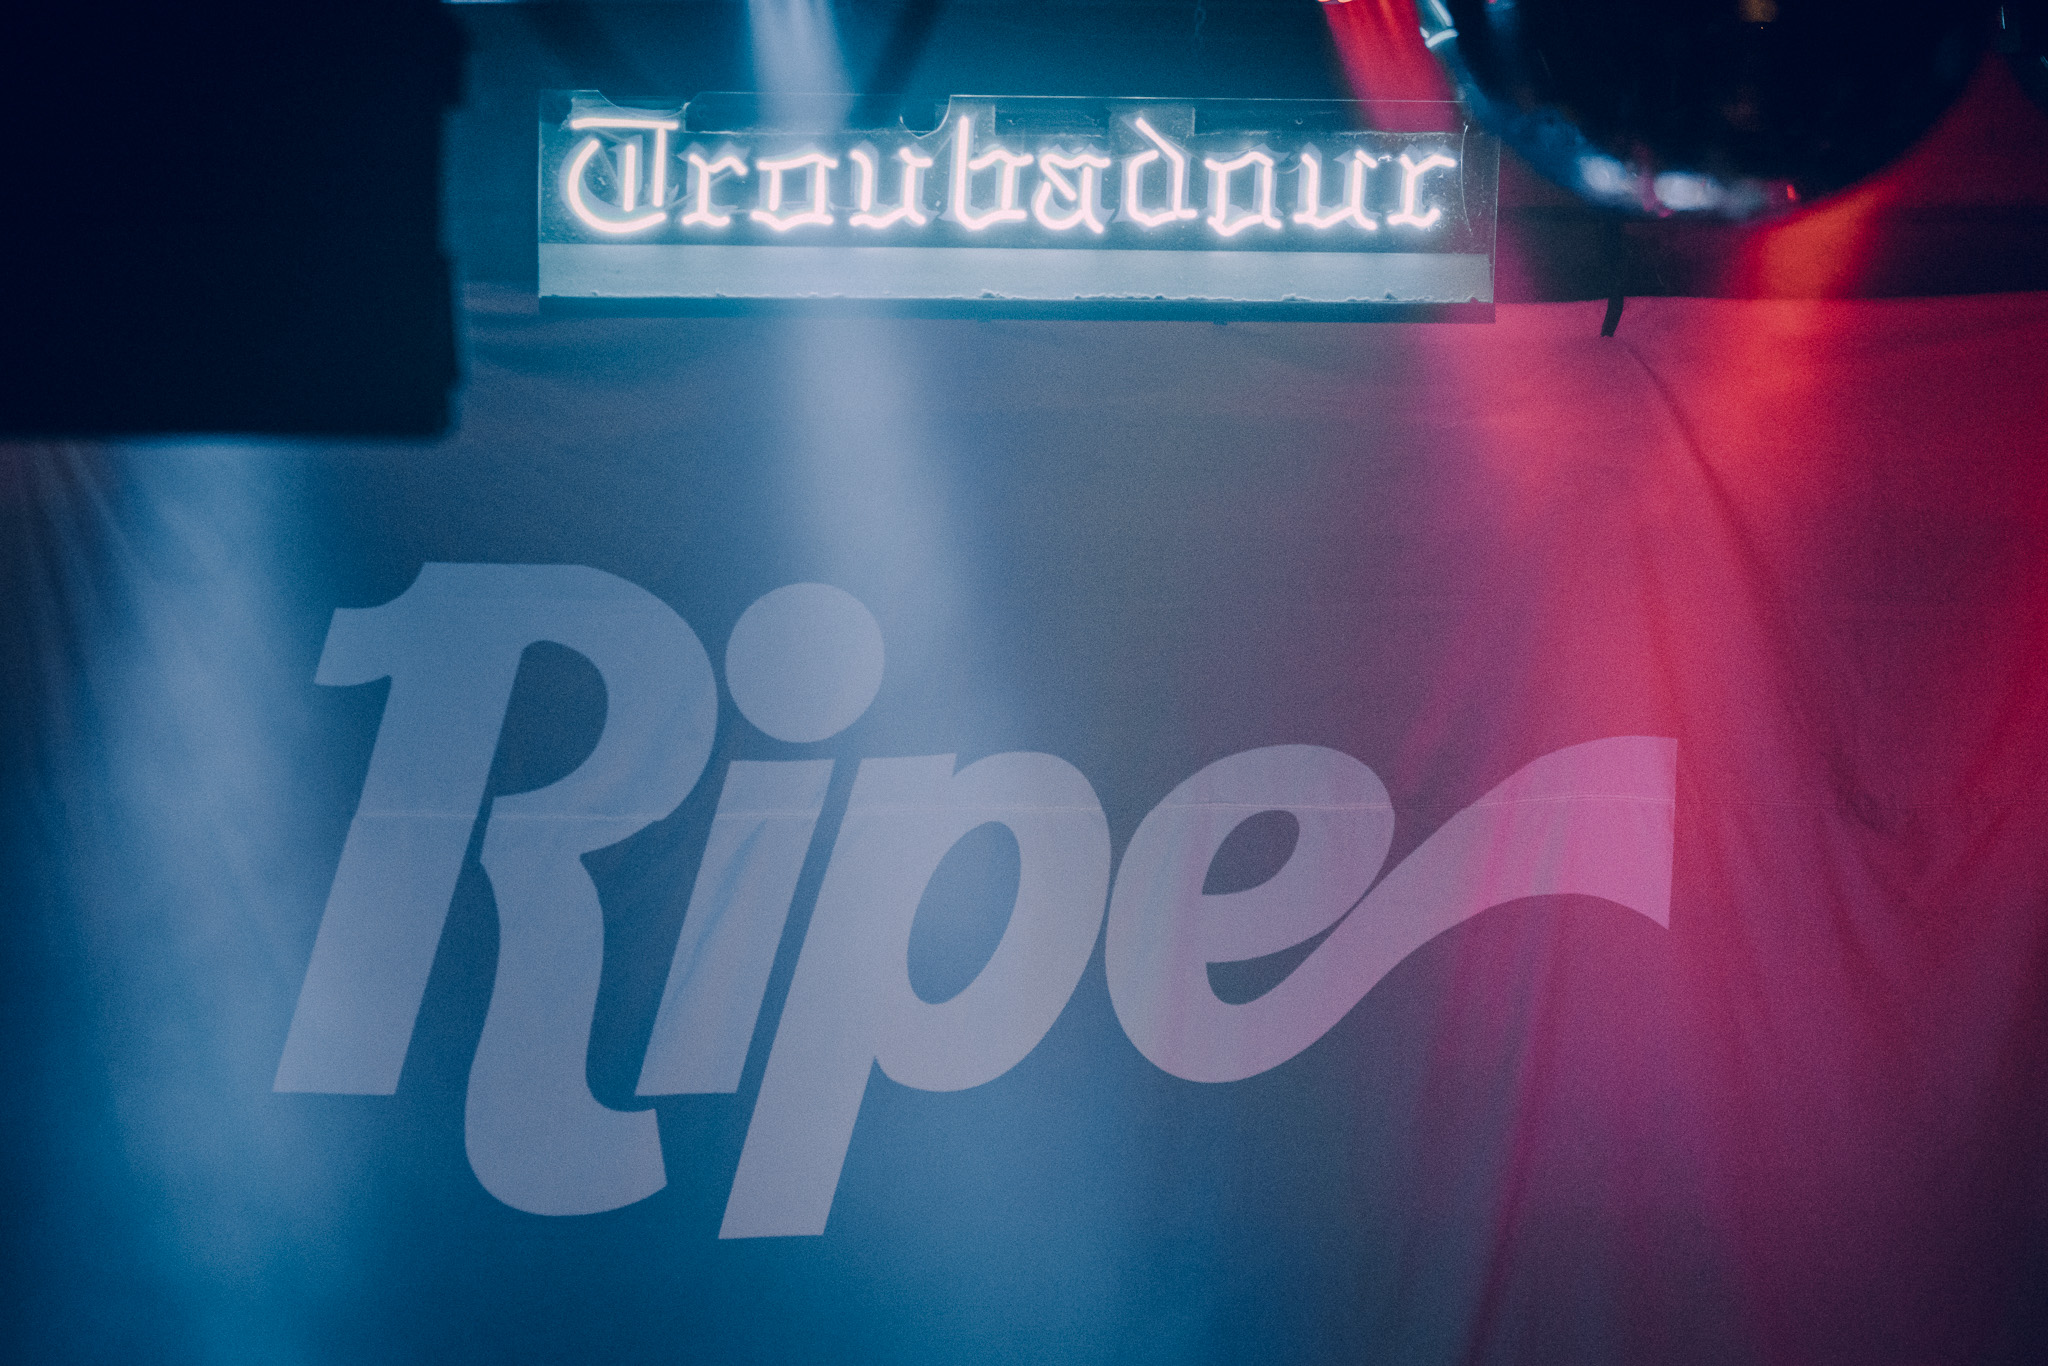 Ripe at The TroubadourLos Angeles, CA | March 2019 -